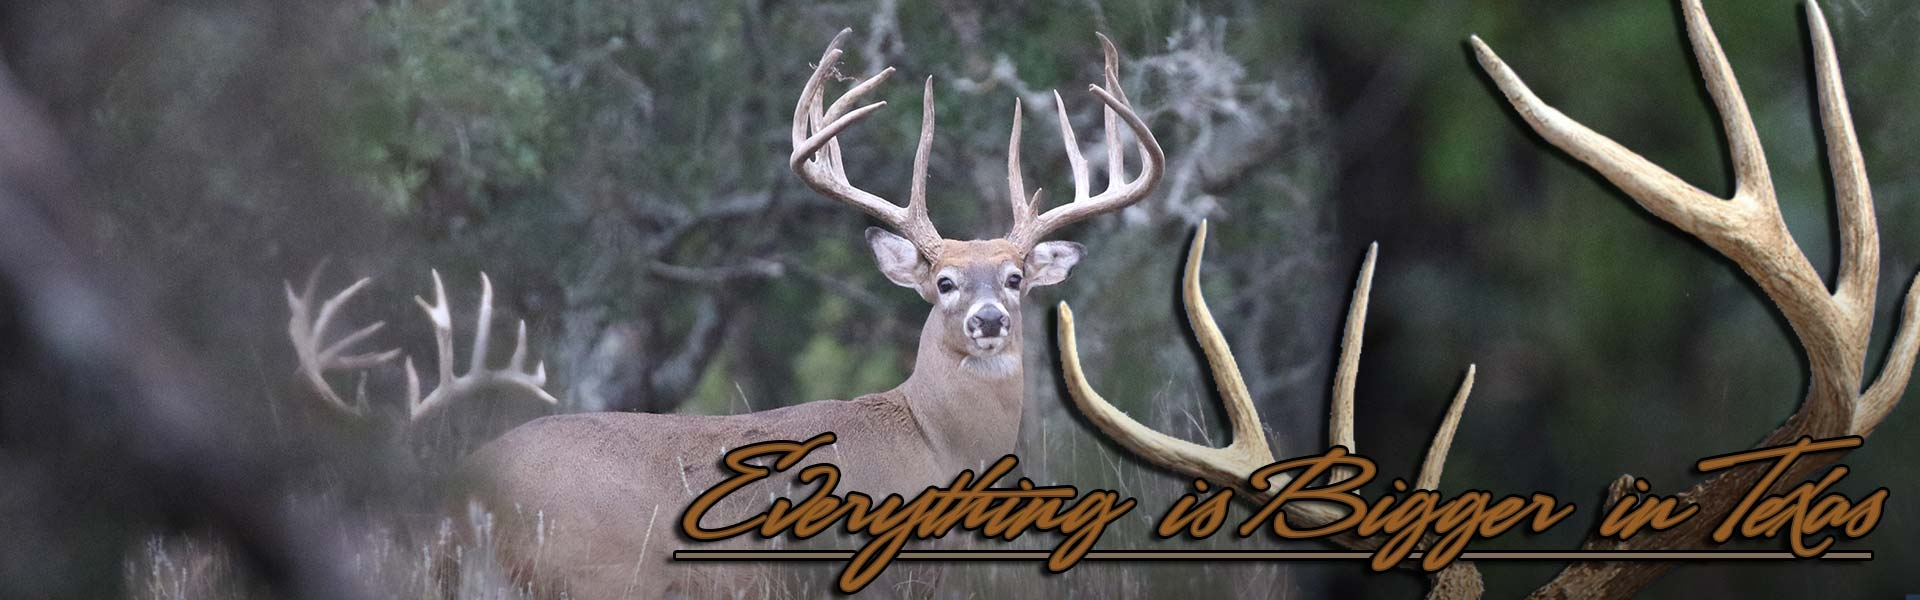 Trophy Whitetail Hunts in Texas